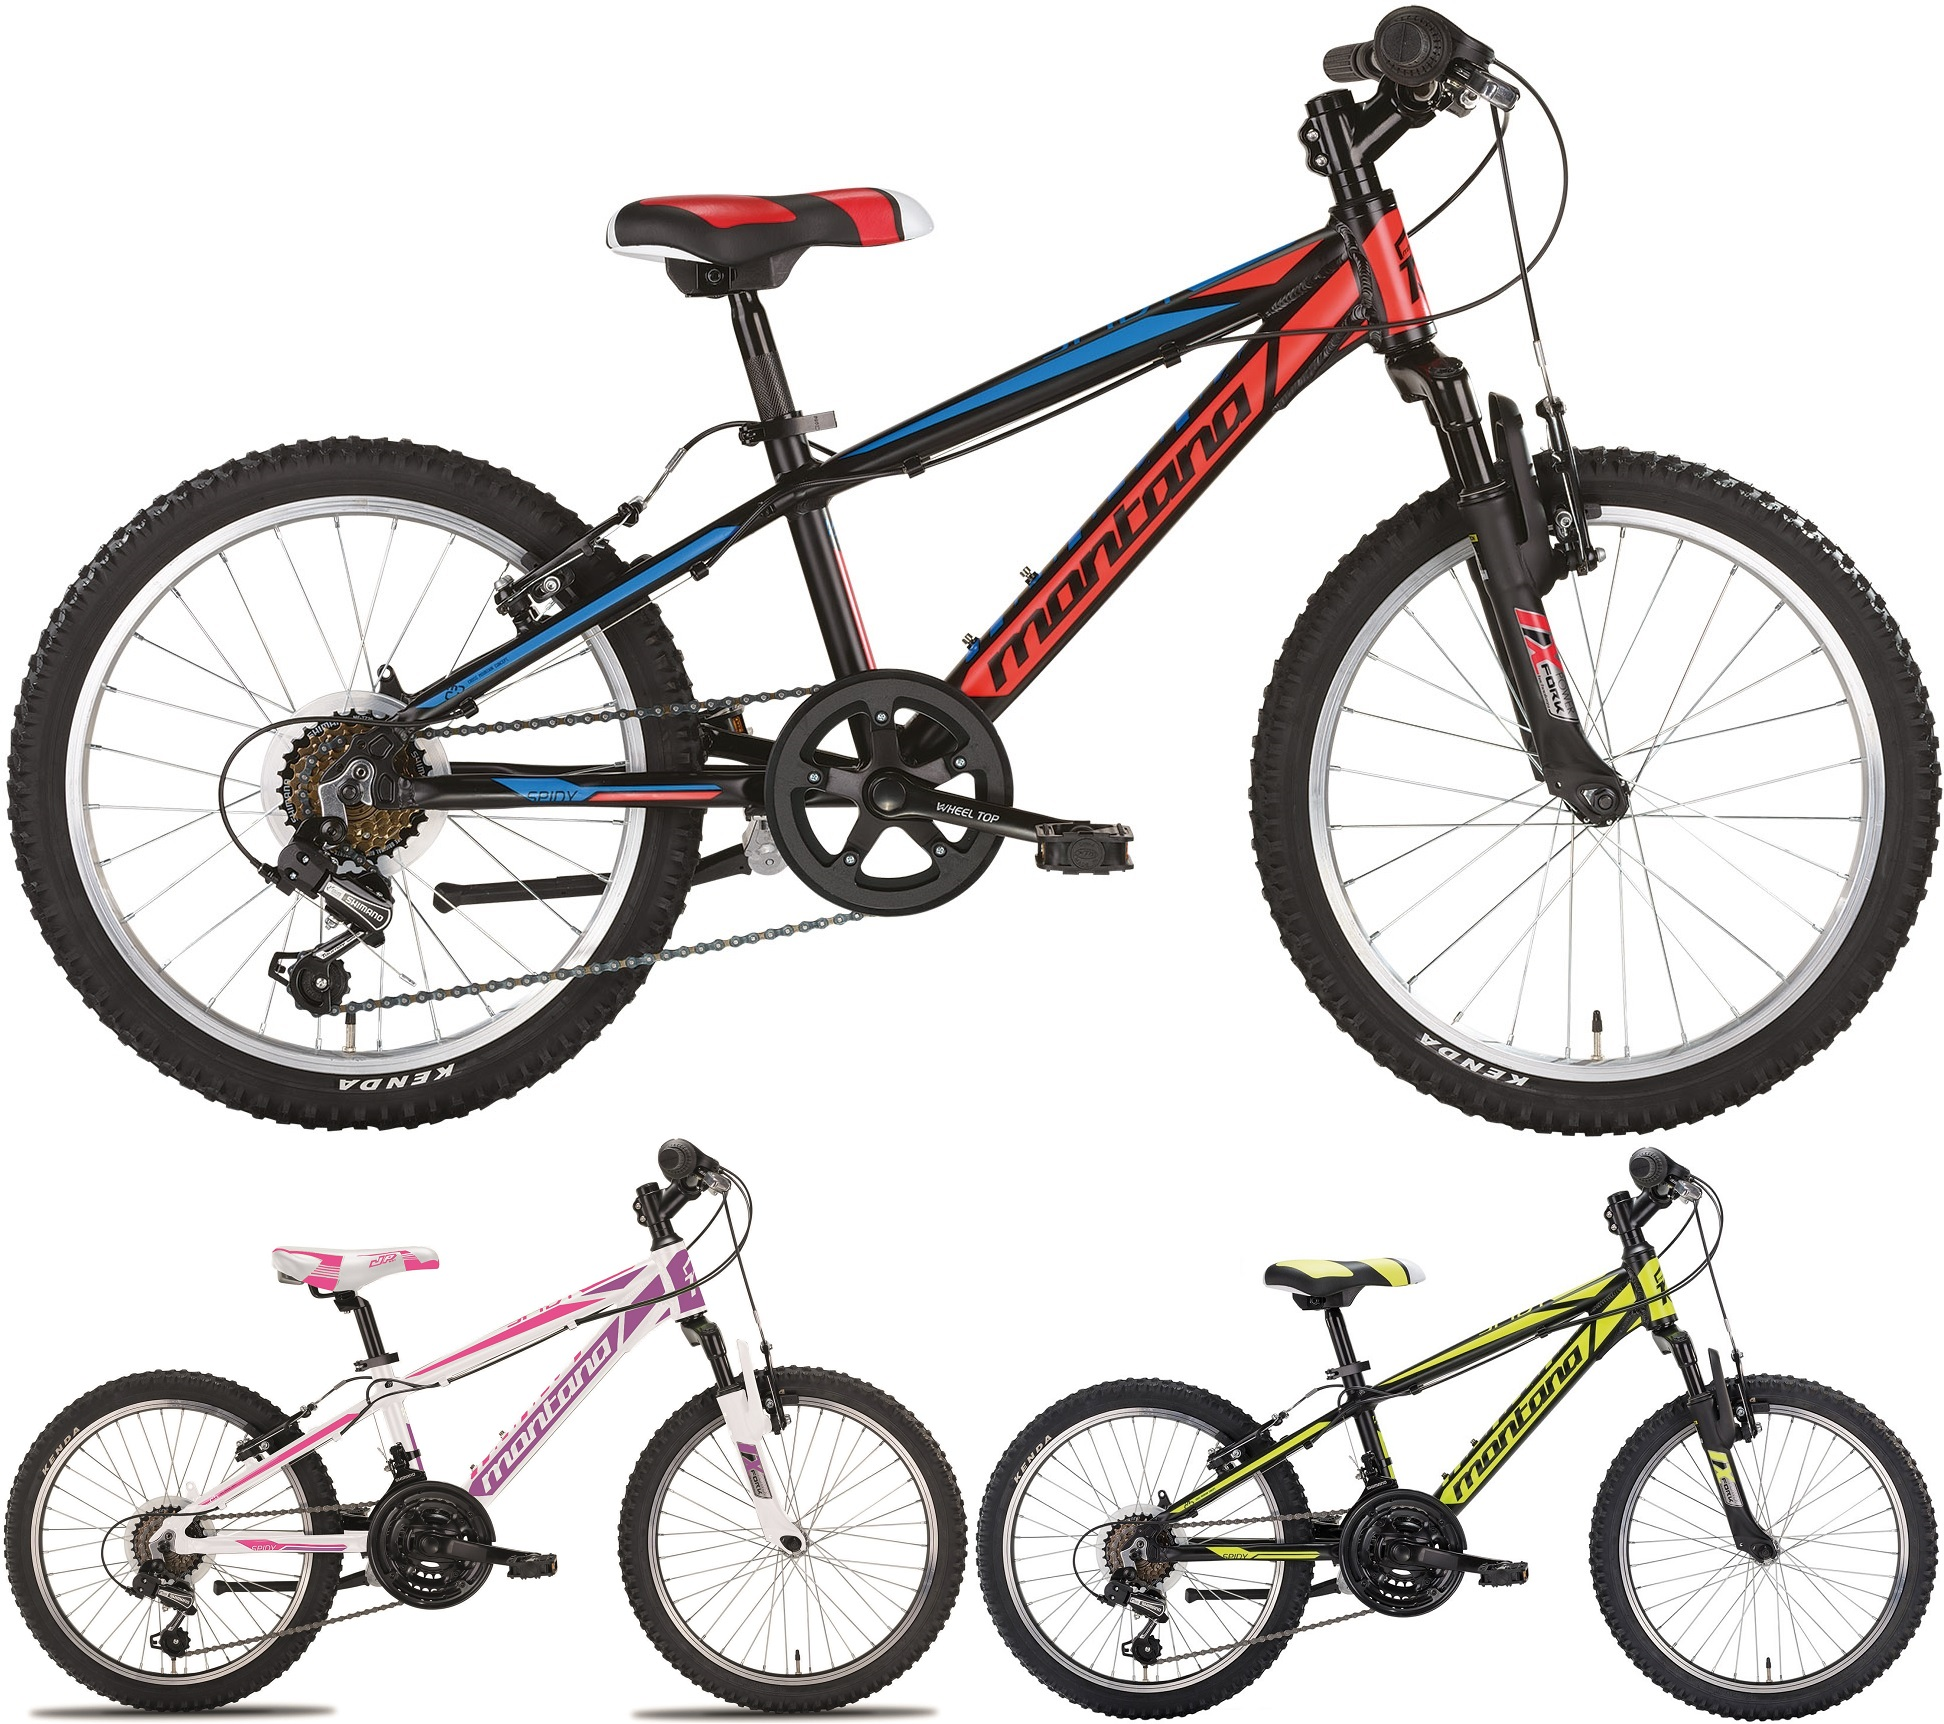 20 zoll mountainbike montana spidy 6 gang fahrr der. Black Bedroom Furniture Sets. Home Design Ideas